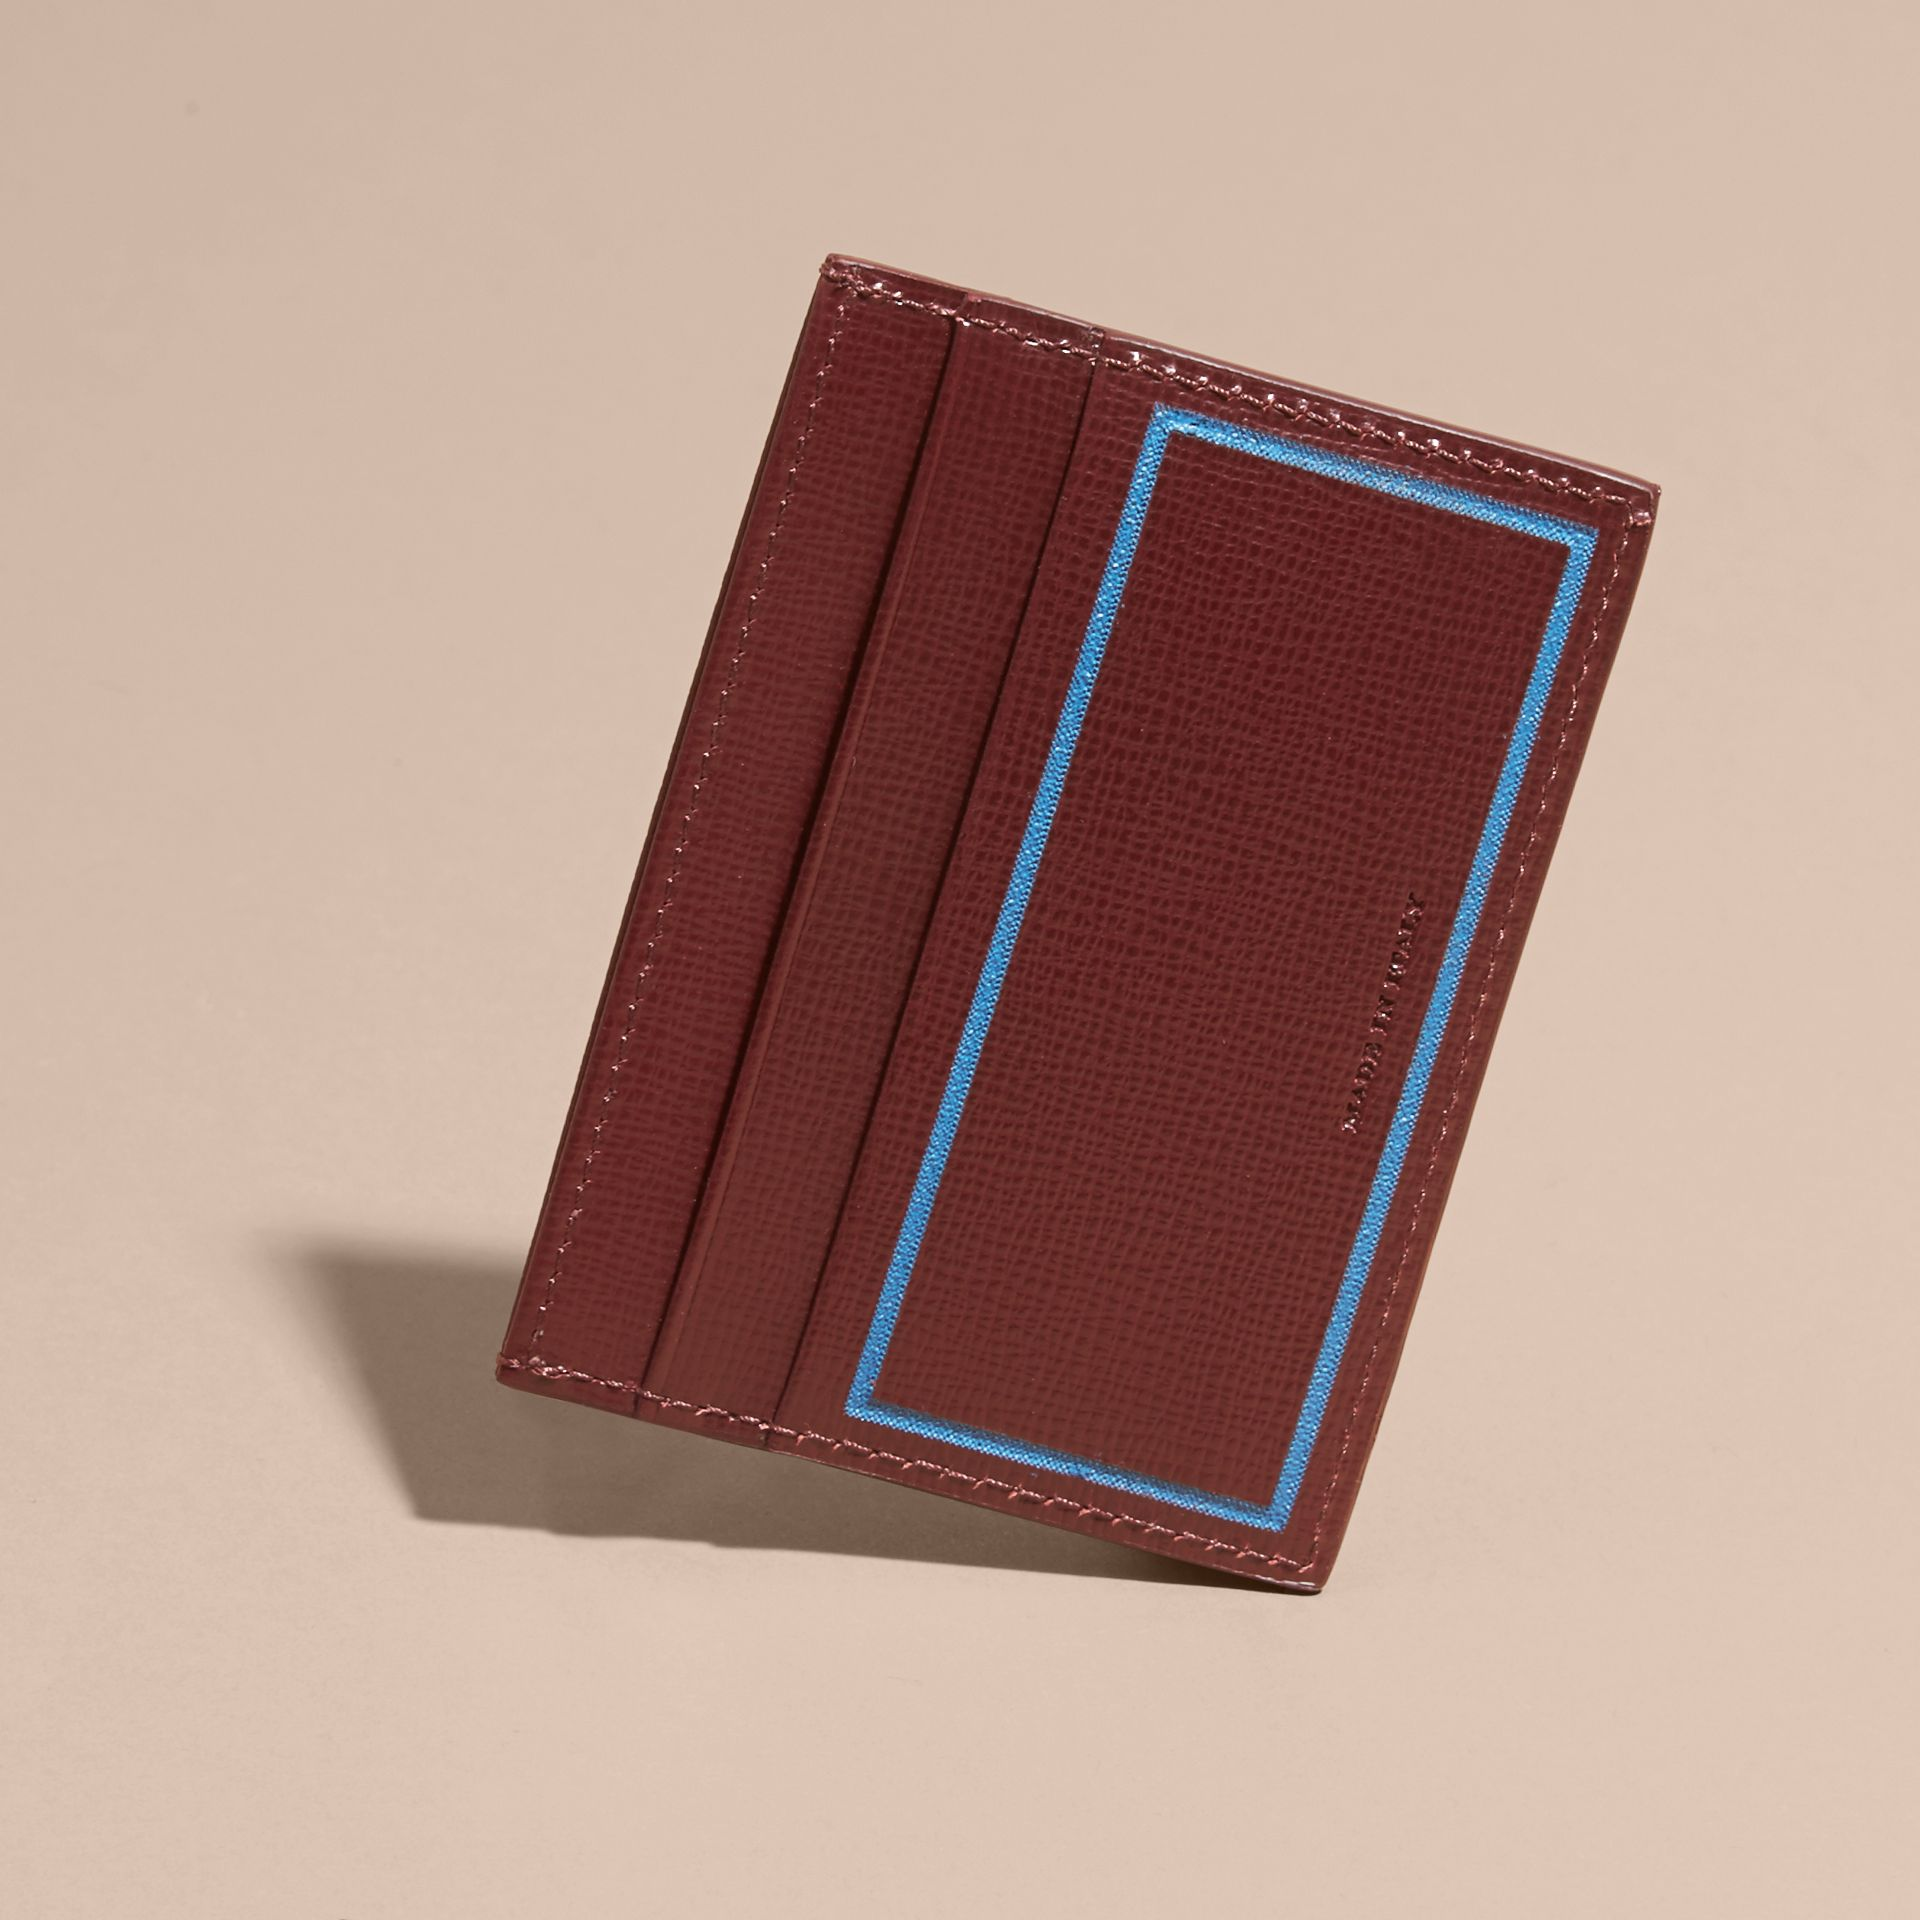 Border Detail London Leather Card Case in Burgundy Red - gallery image 3